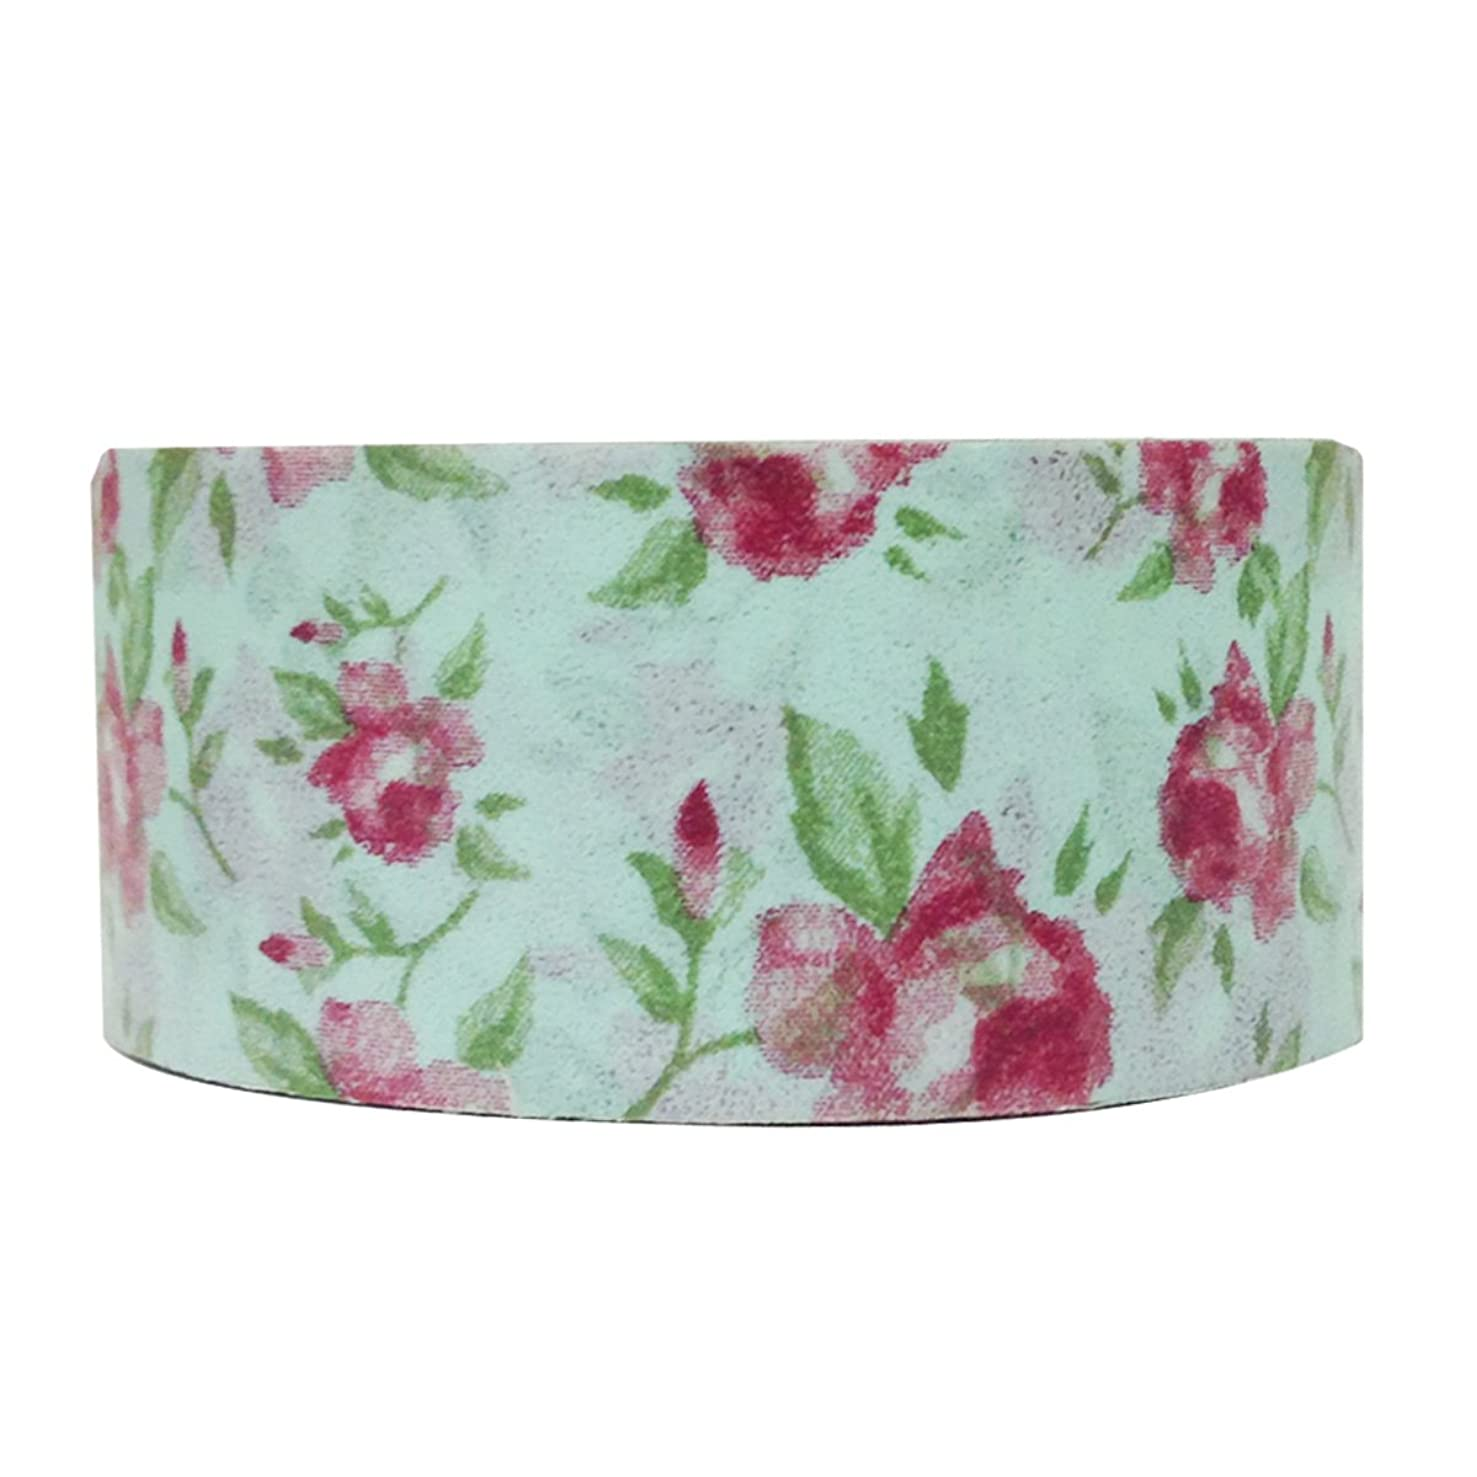 Allydrew Floral & Nature Washi Masking Tape, Country Rose